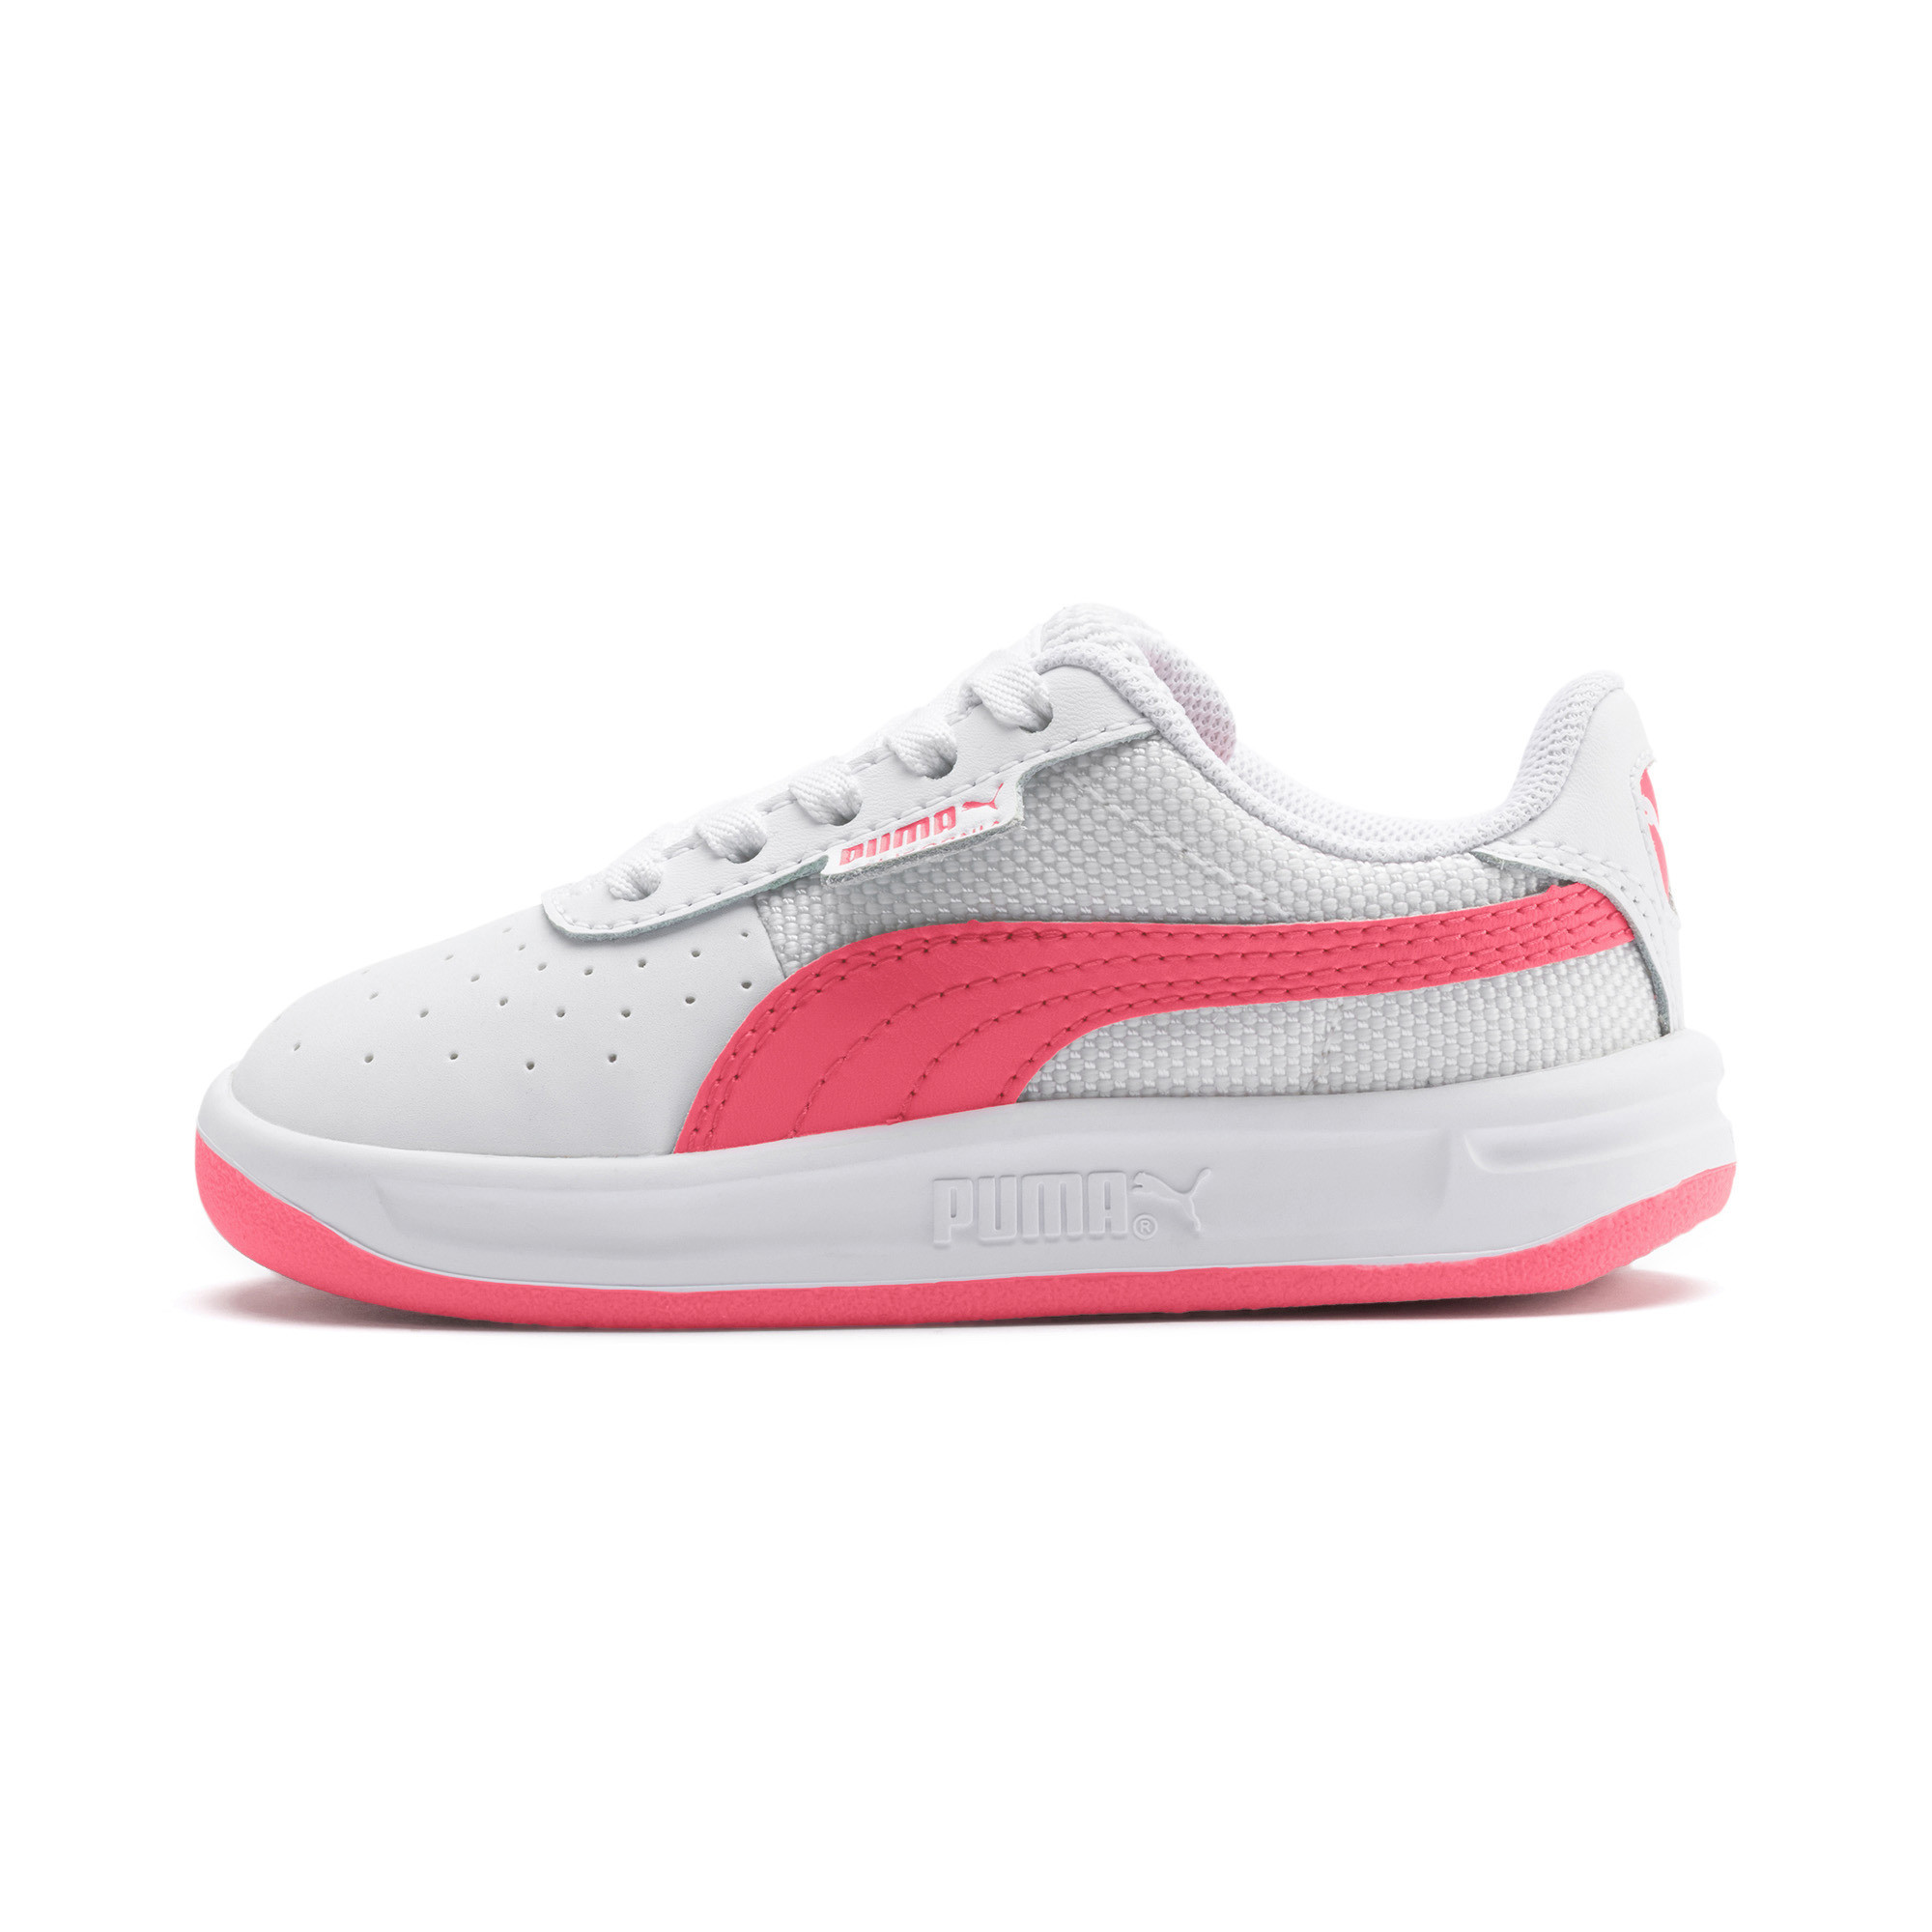 PUMA-California-Toddler-Shoes-Kids-Shoe-Kids thumbnail 10